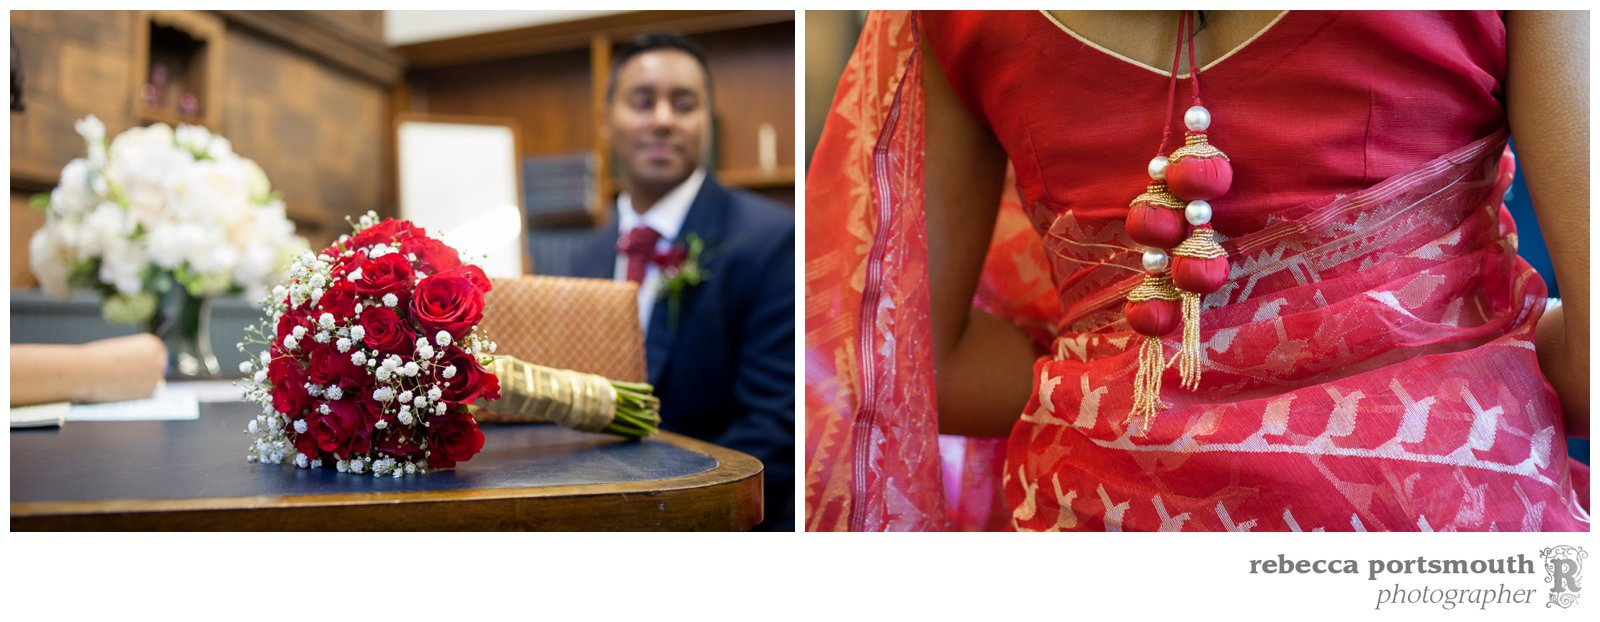 A red rose and gypsophila wedding bouquet + red wedding sari at the Marylebone Room wedding of Tas + Ravi.